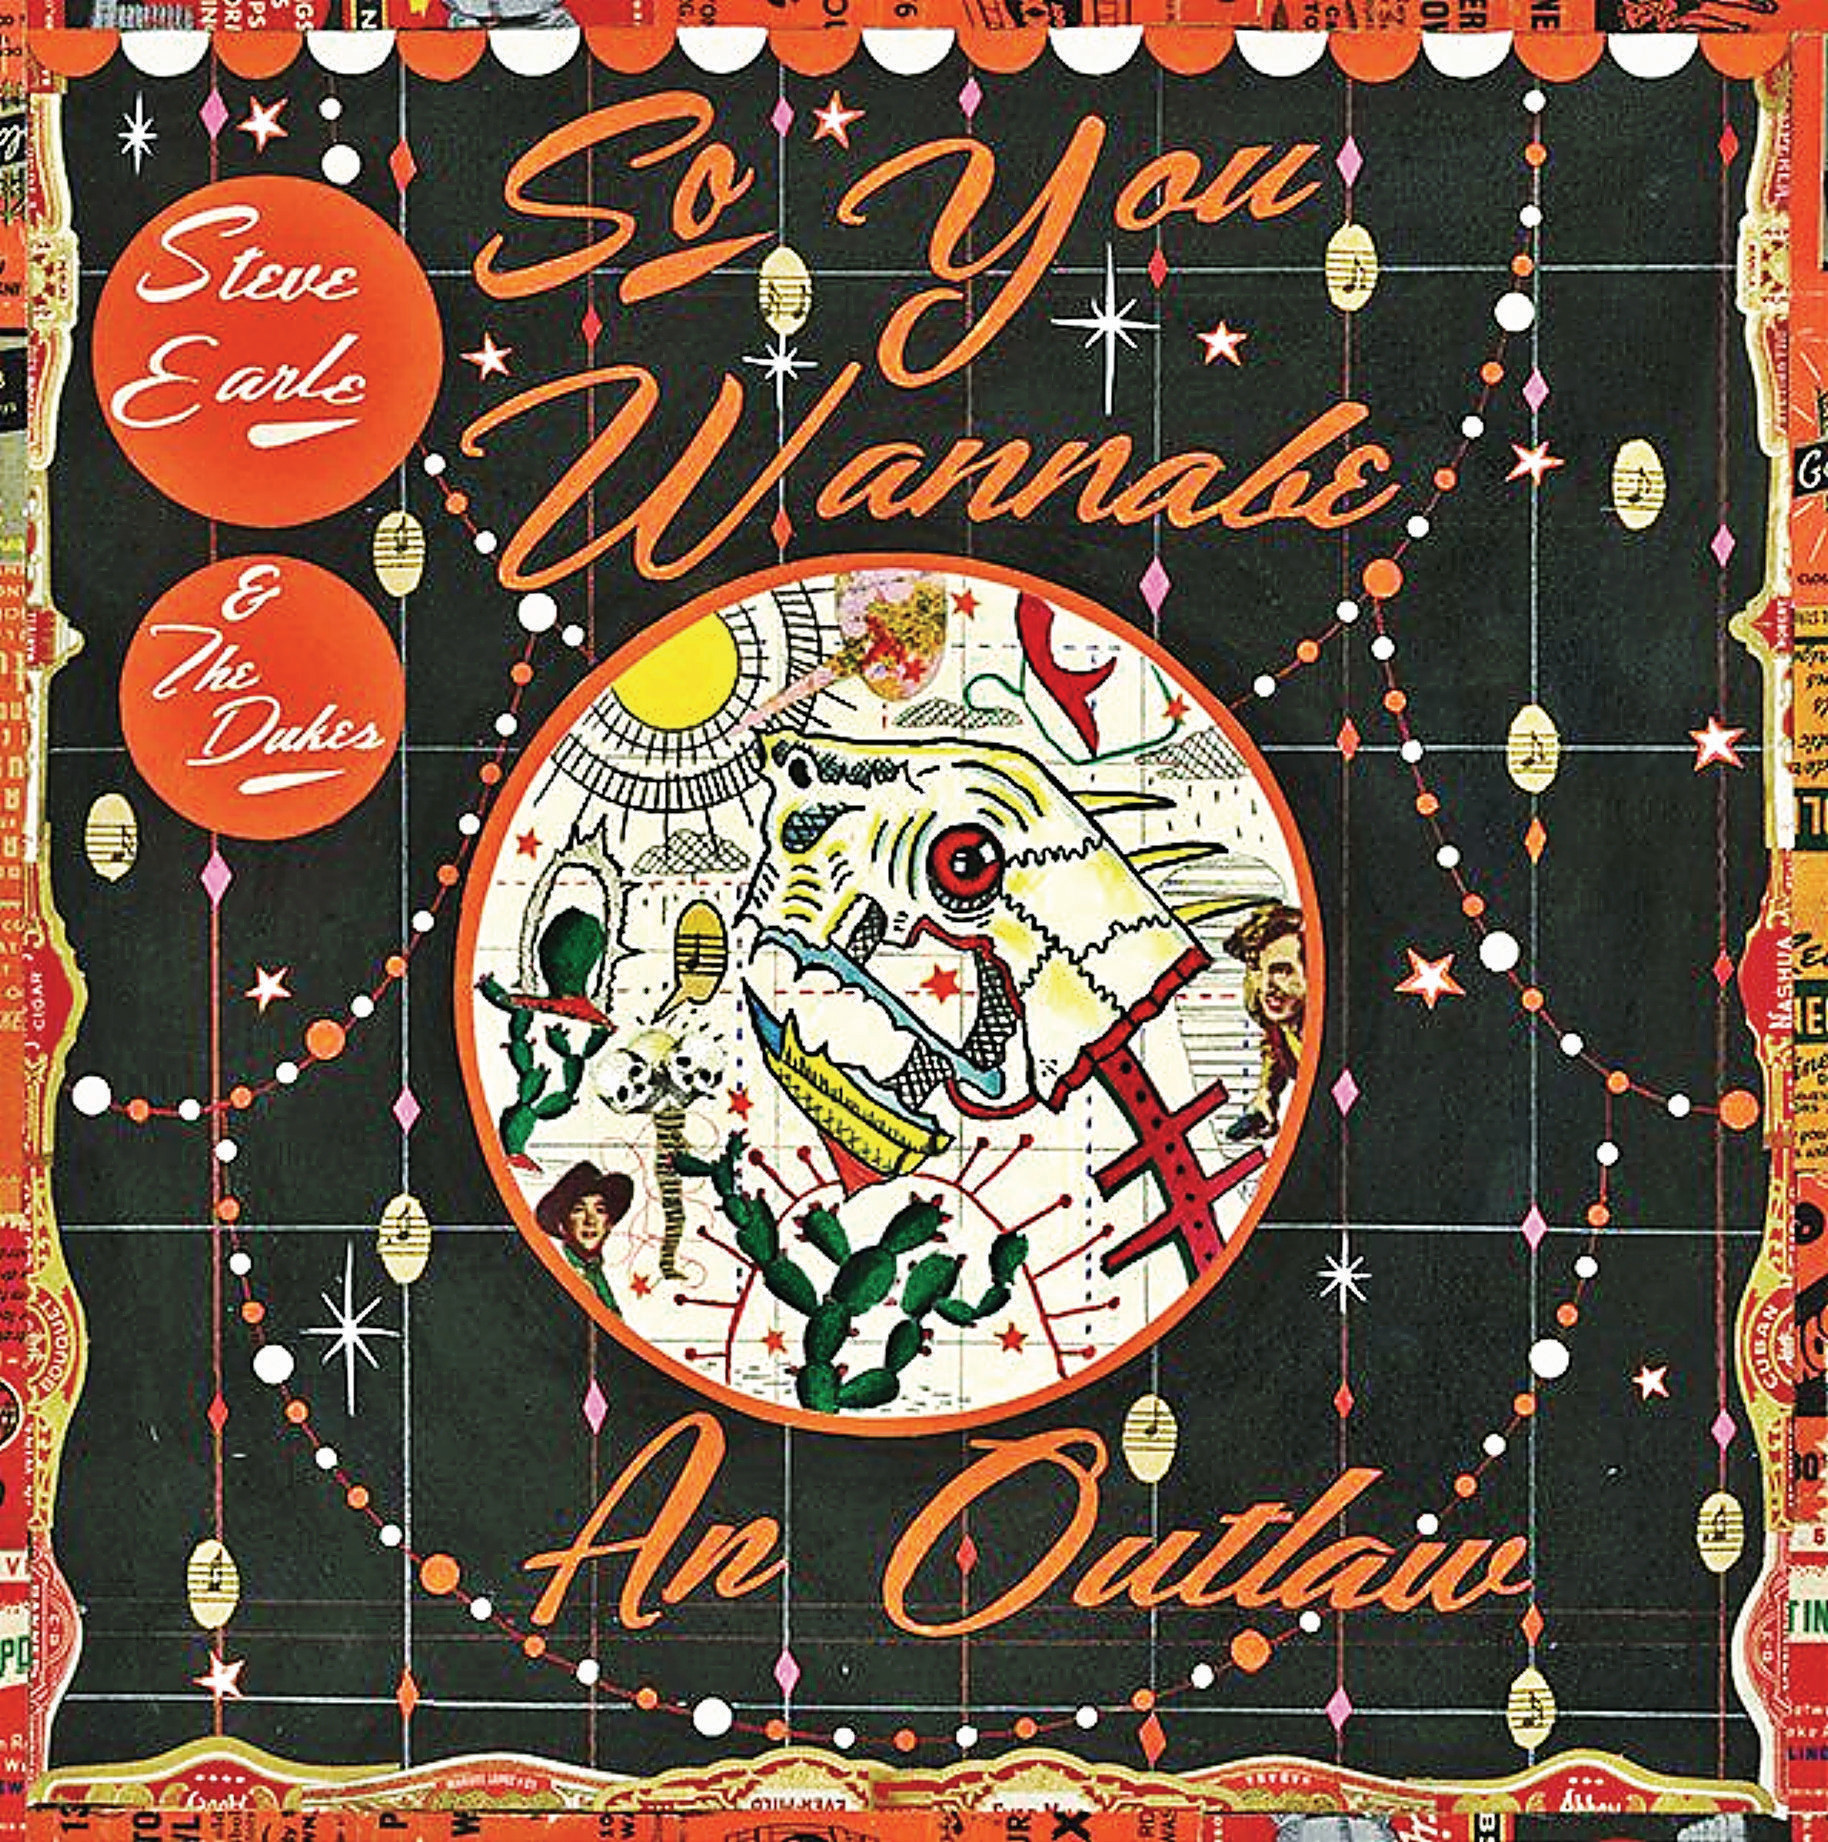 Steve Earle - So You Wanna Be An Outlaw